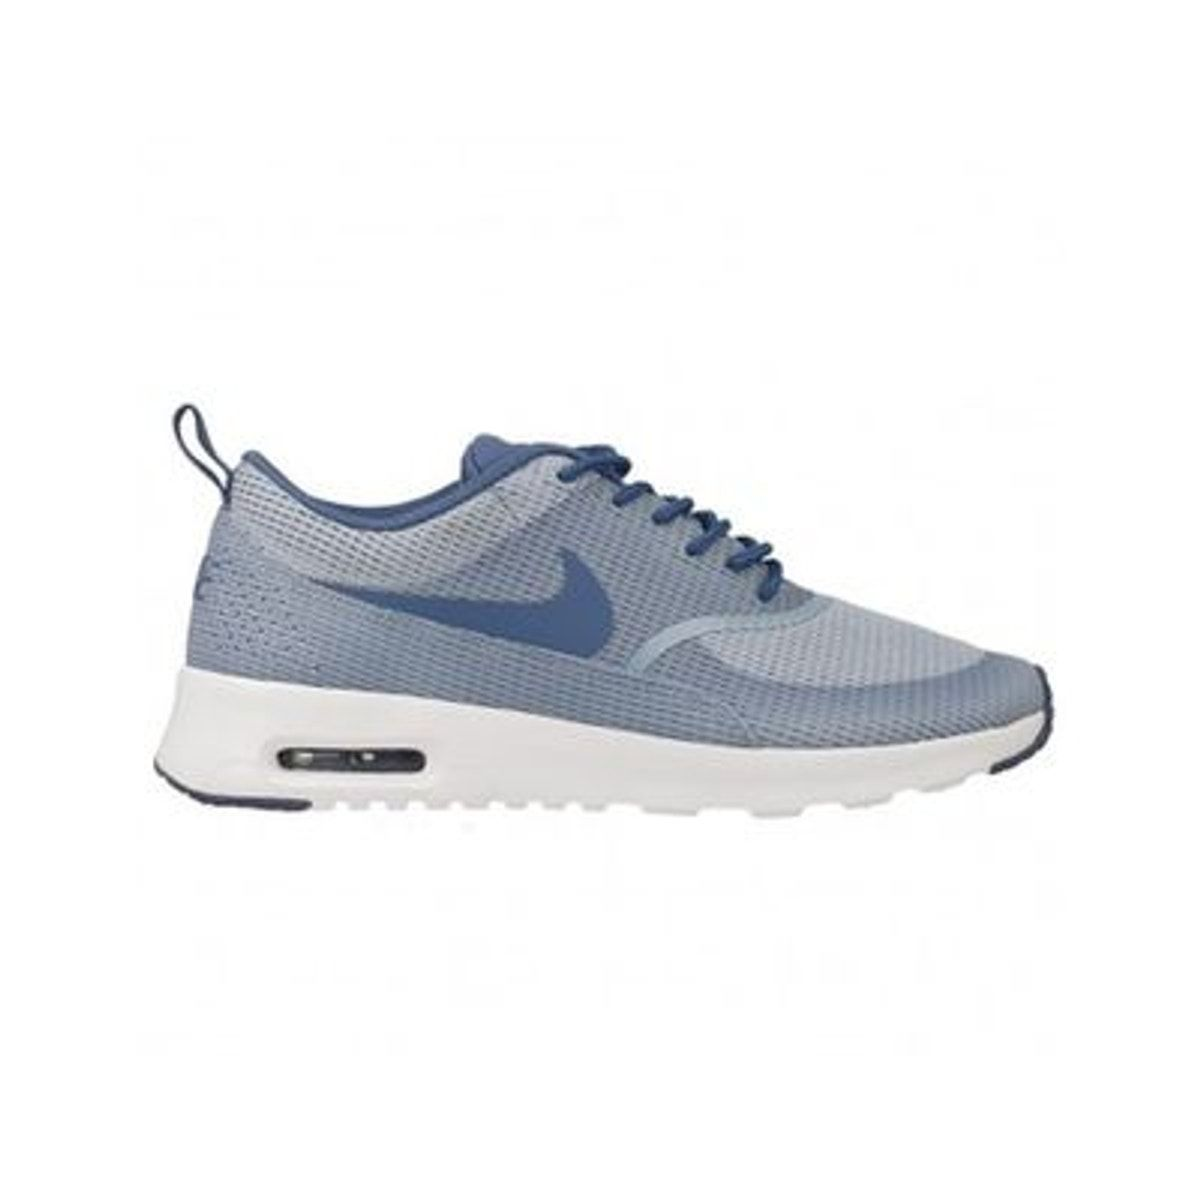 Wmns Air Max Thea Premium Baskets 616723 104 Taille